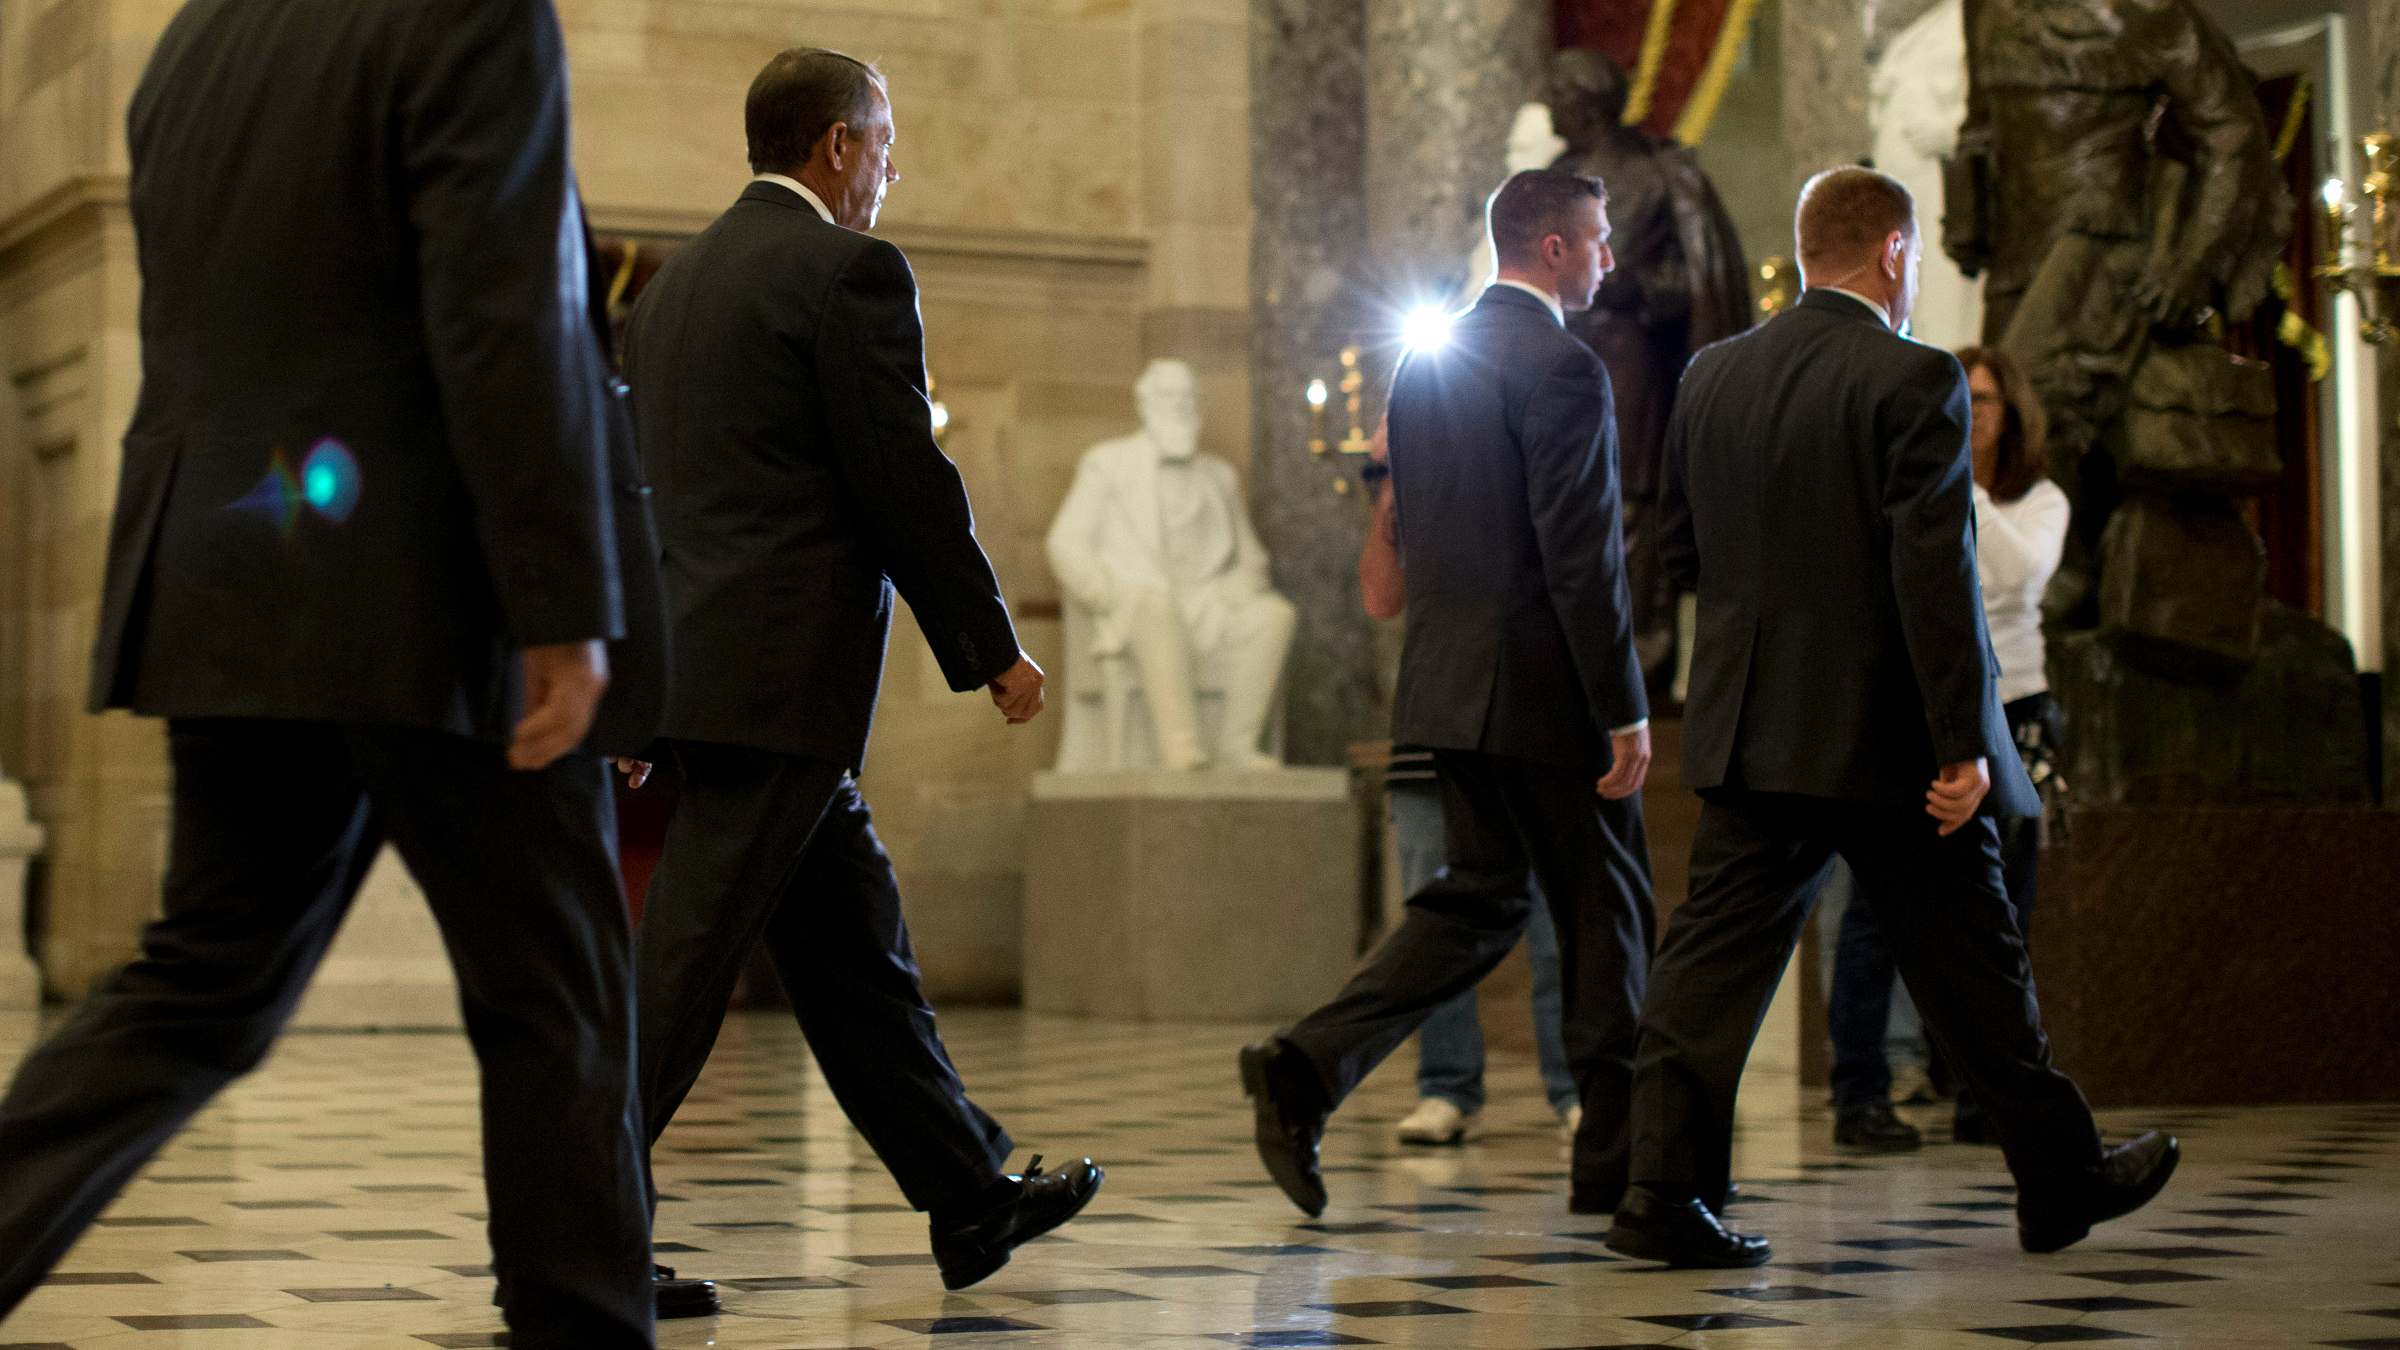 Speaker of the House Rep. John Boehner, R-Ohio, , second from left, walks to the House floor to vote on a bill to the raise the debt ceiling and fund the government on Capitol Hill on Wednesday, Oct. 16, 2013 in Washington.